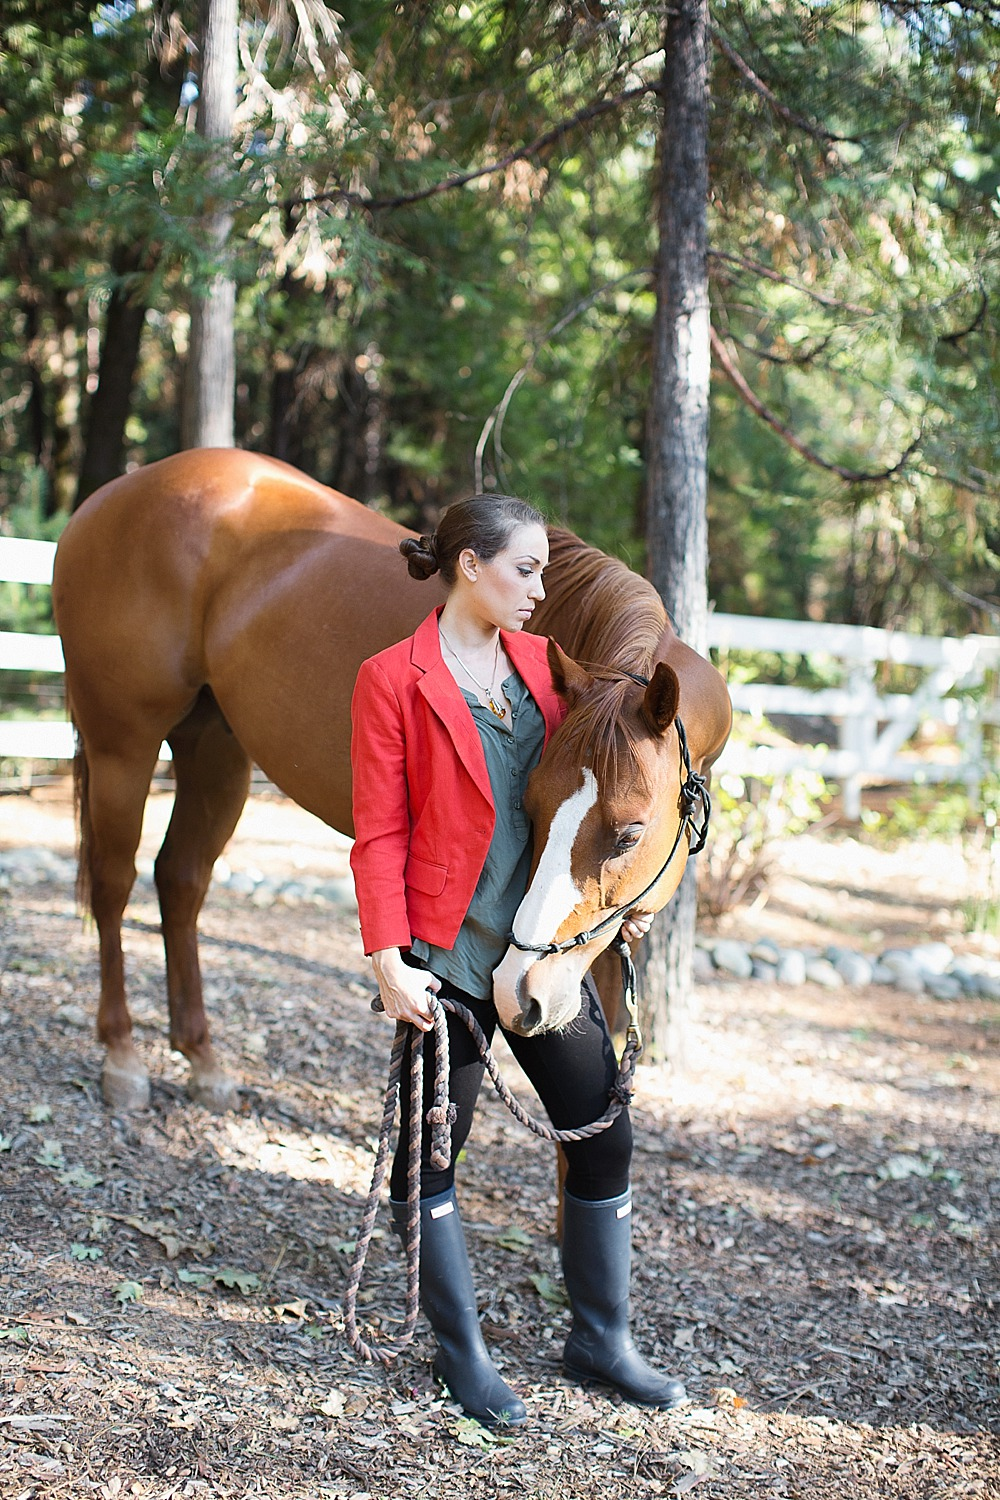 rachel-equestrian-grass-valley-diana-elizabeth-photography-165